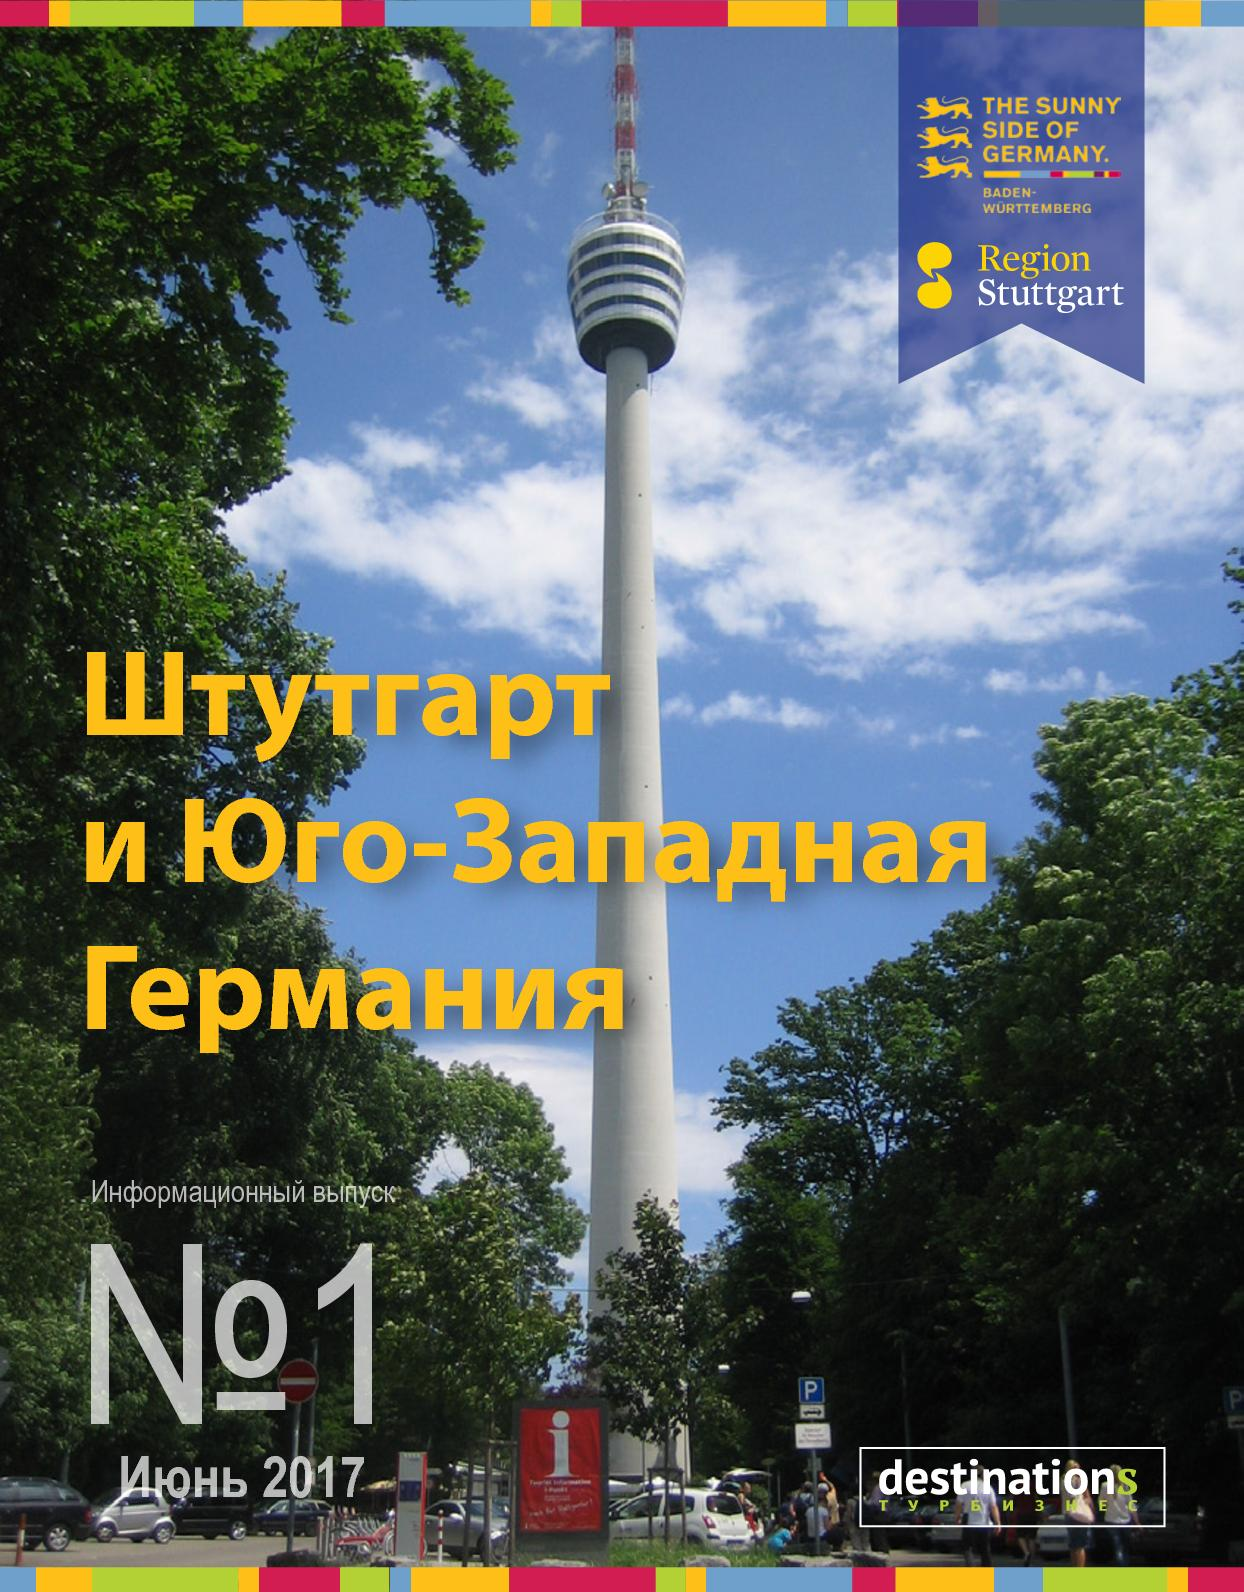 Bw Newsletter May 2017 Cor 07 07 пополосно